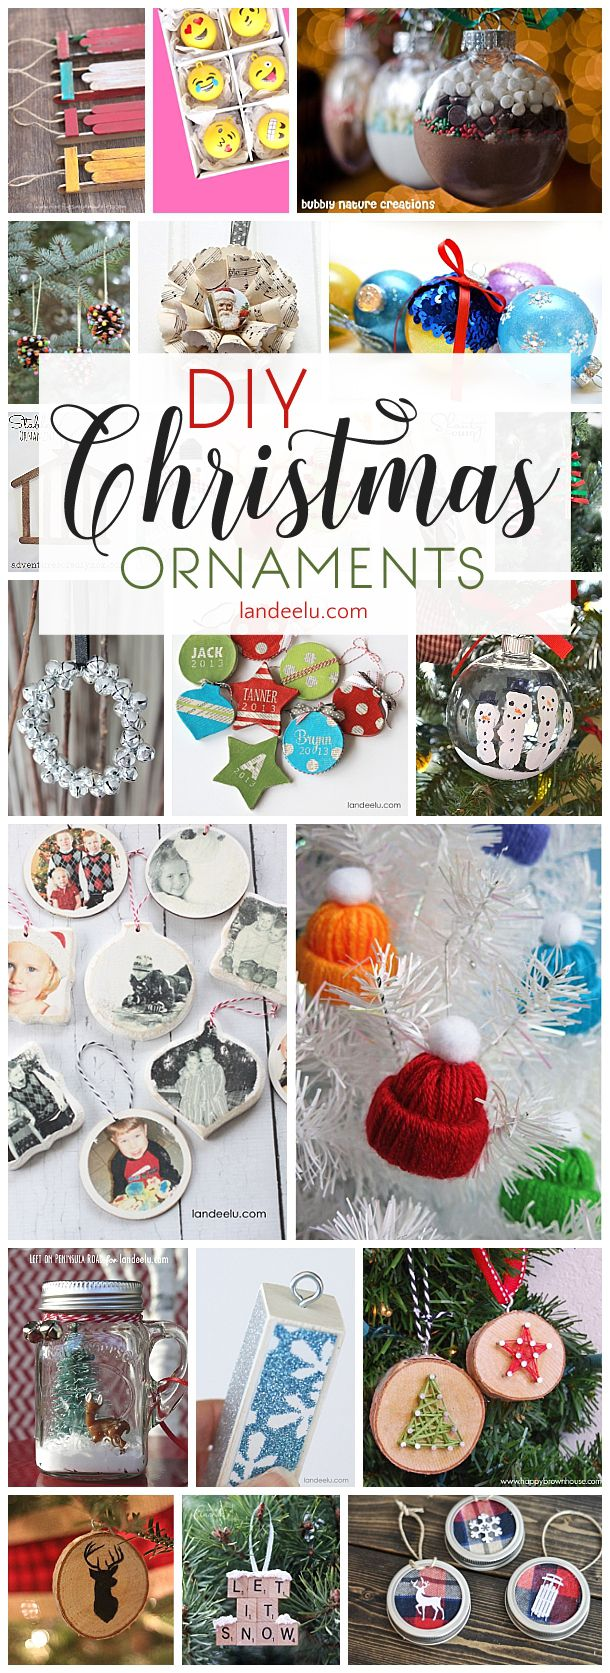 Have a beautiful handmade christmas with these diy christmas have a beautiful handmade christmas with these diy christmas ornaments diy christmas ornaments to make for a festive do it yourself holiday cheap solutioingenieria Choice Image